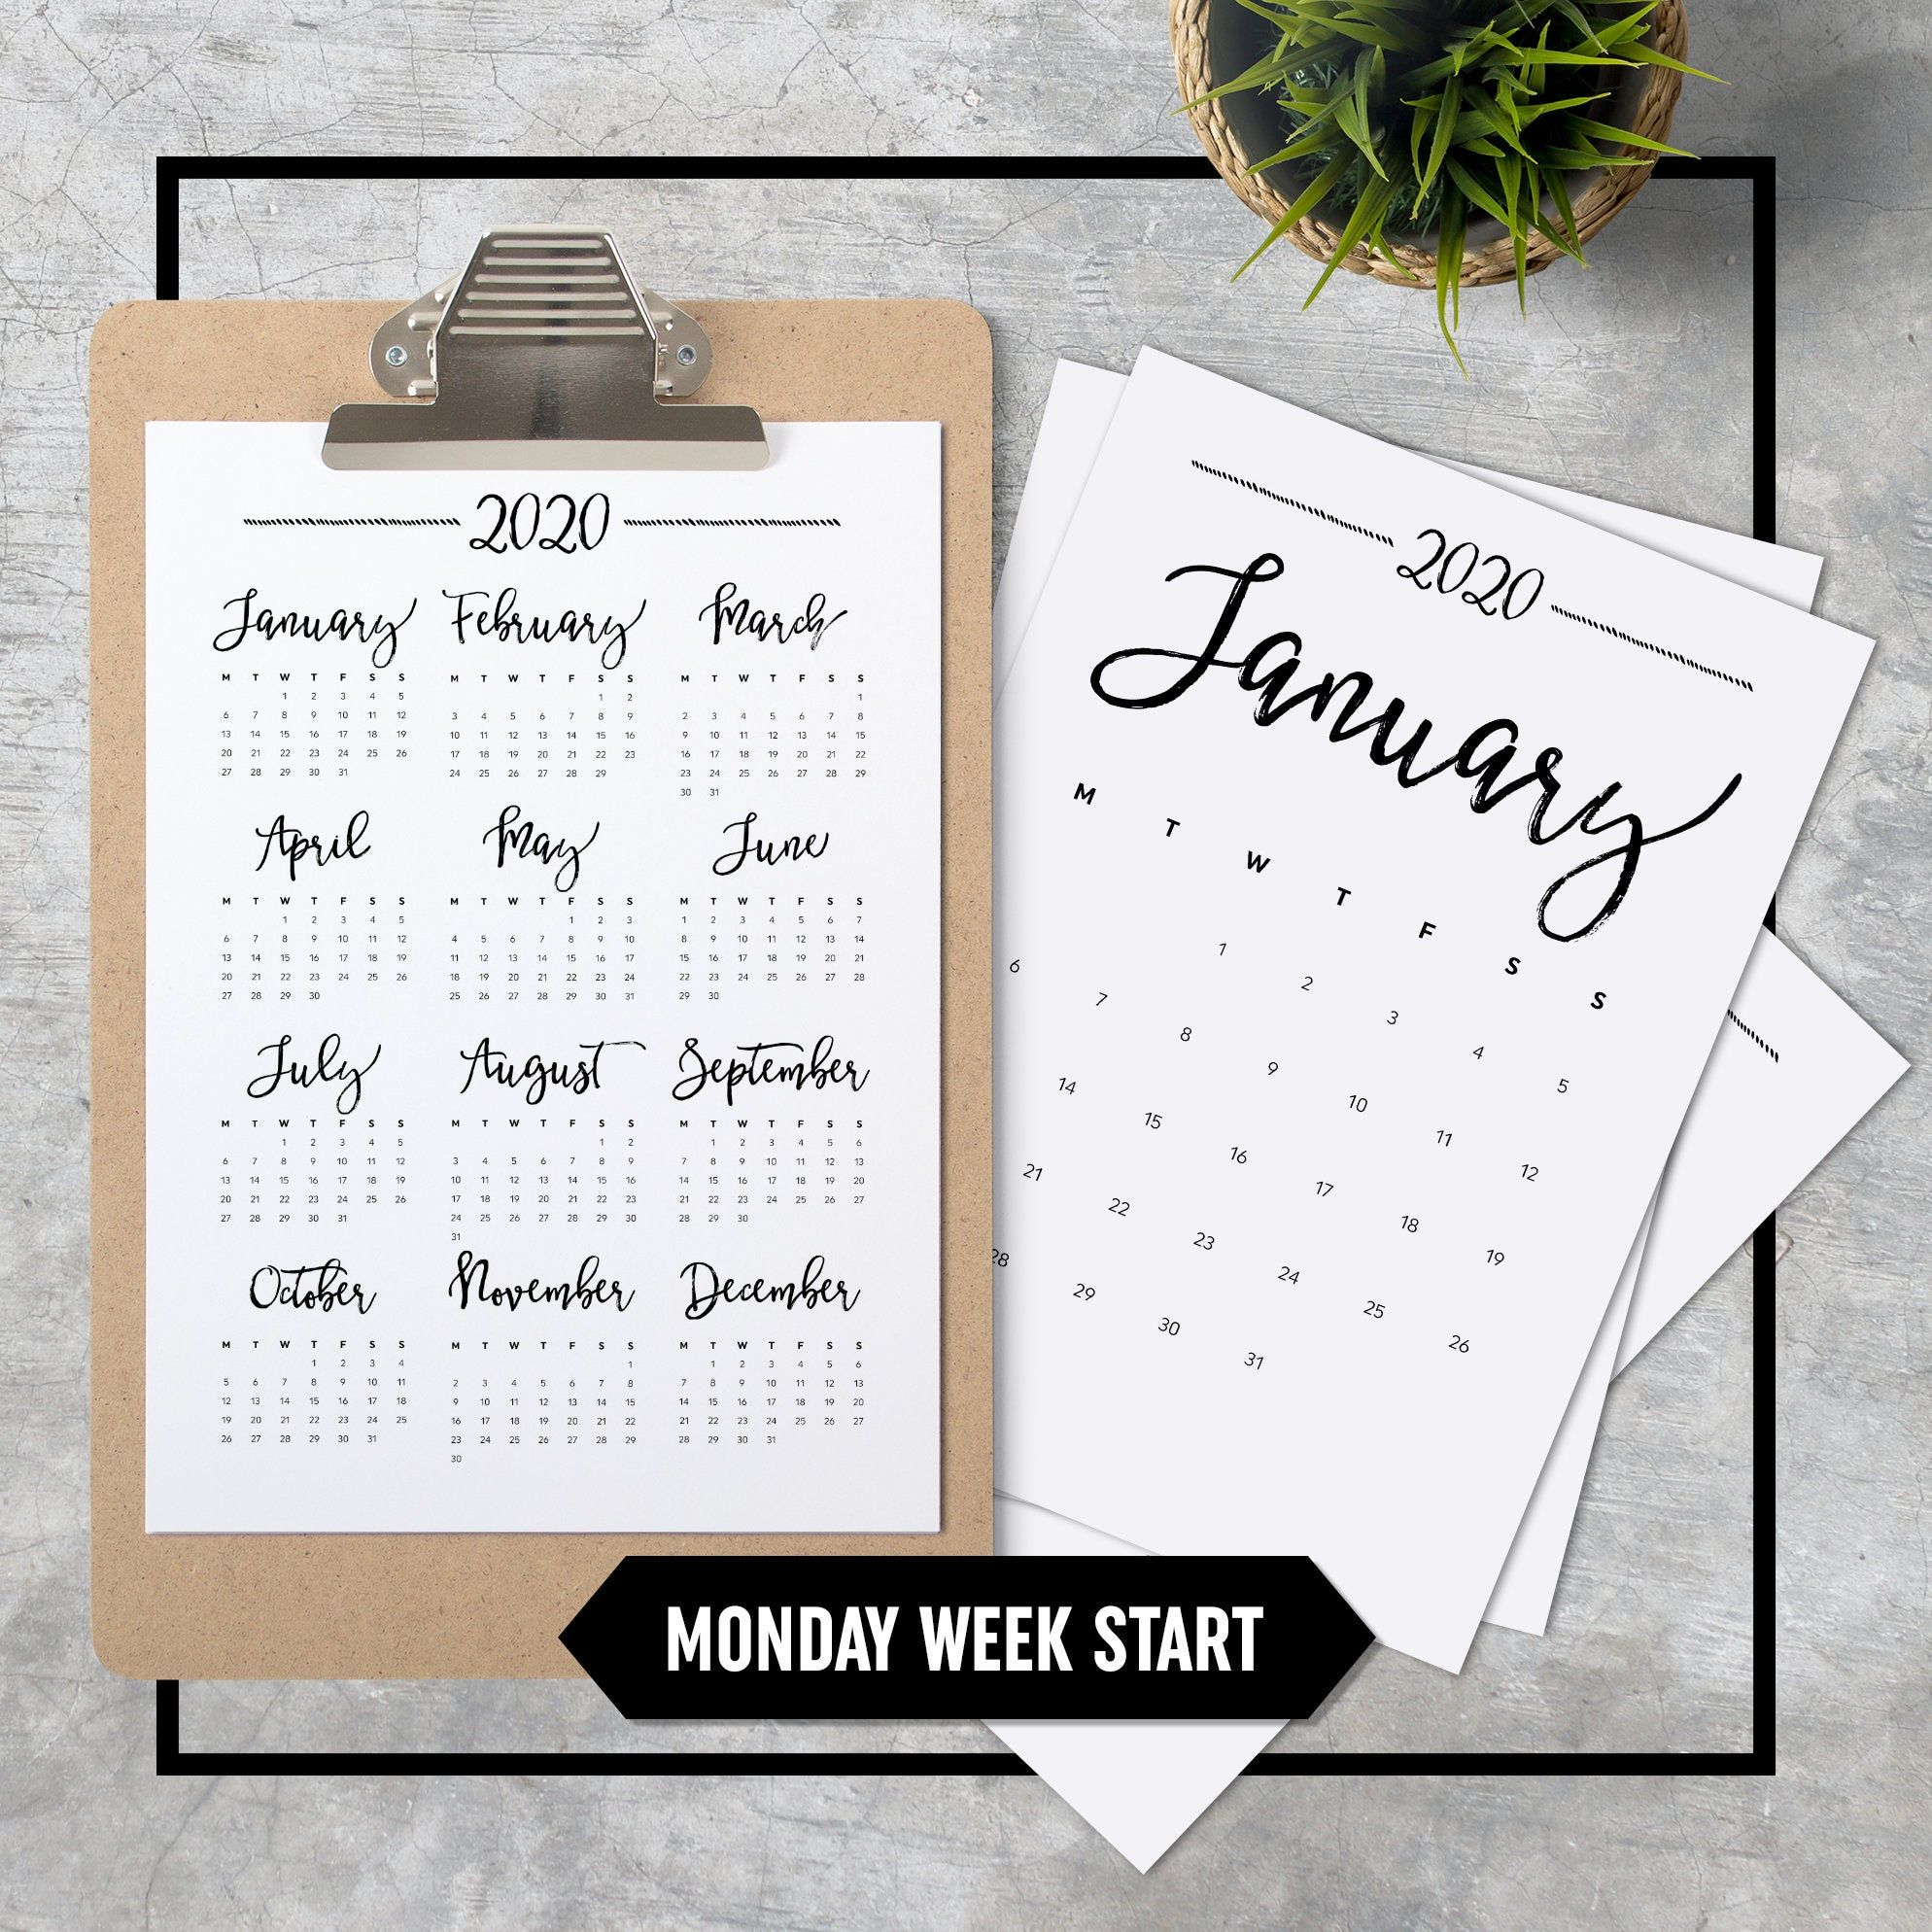 Calendar A4 Printable Minimalistic Monday Week